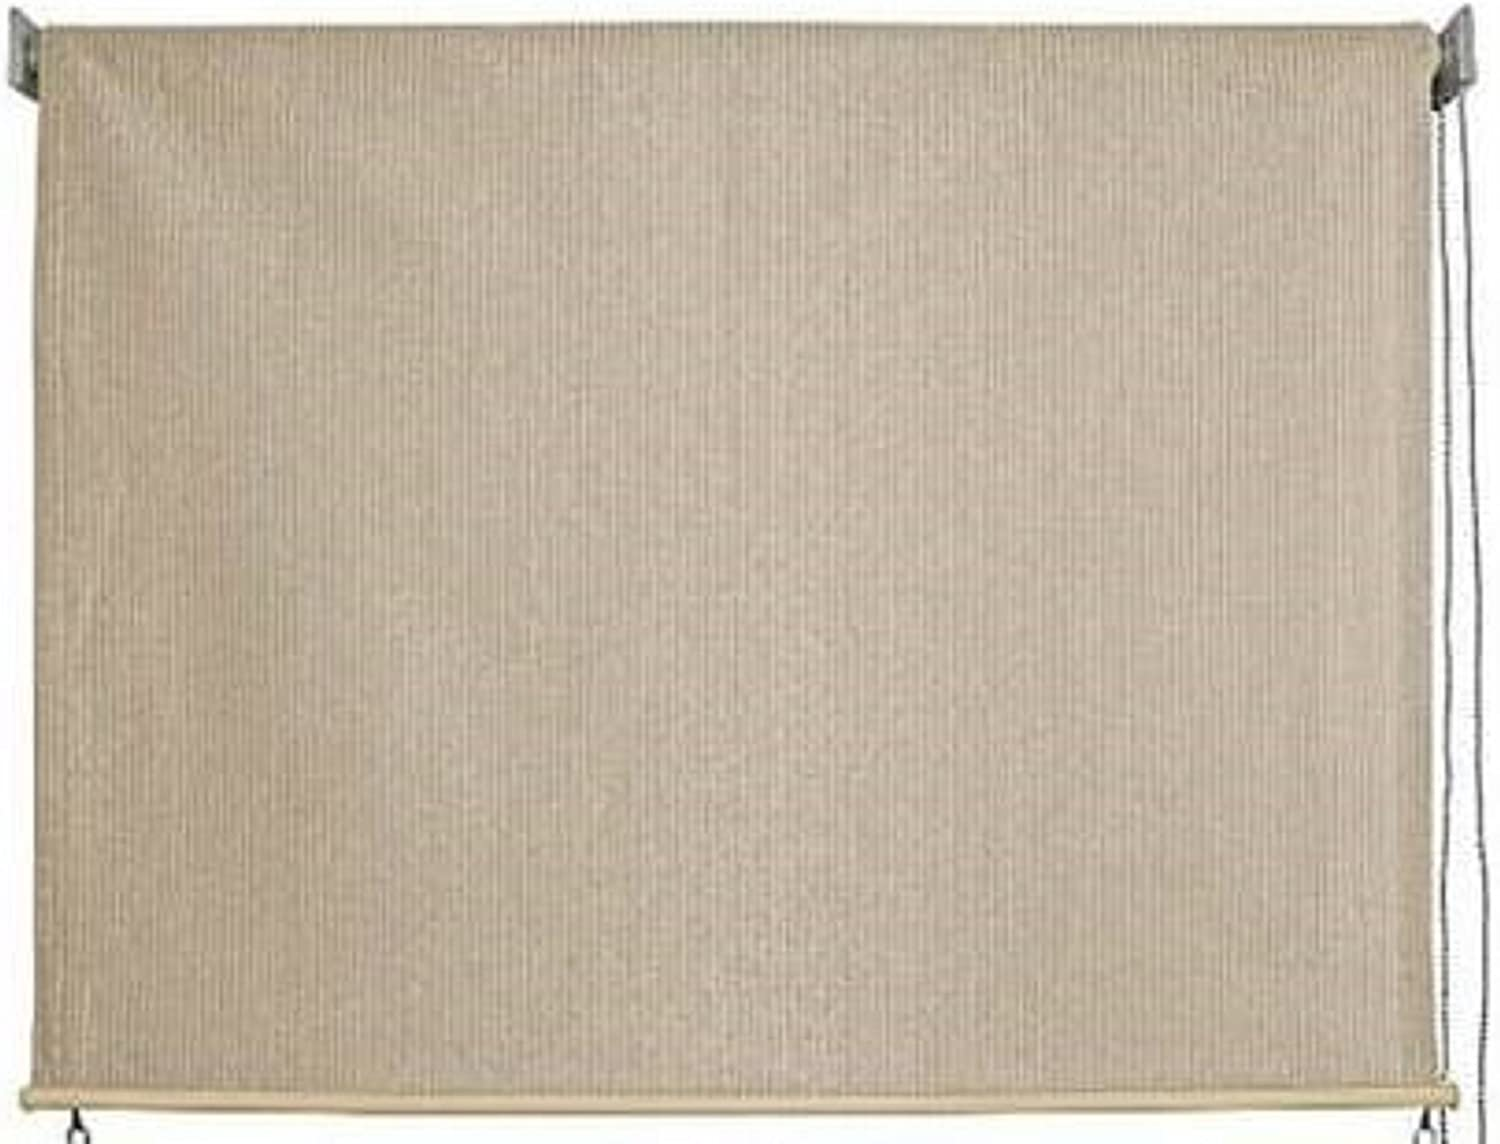 Keystone Fabrics Outdoor Roller Sun Shade, 8-Feet by 6-Feet, Monterey